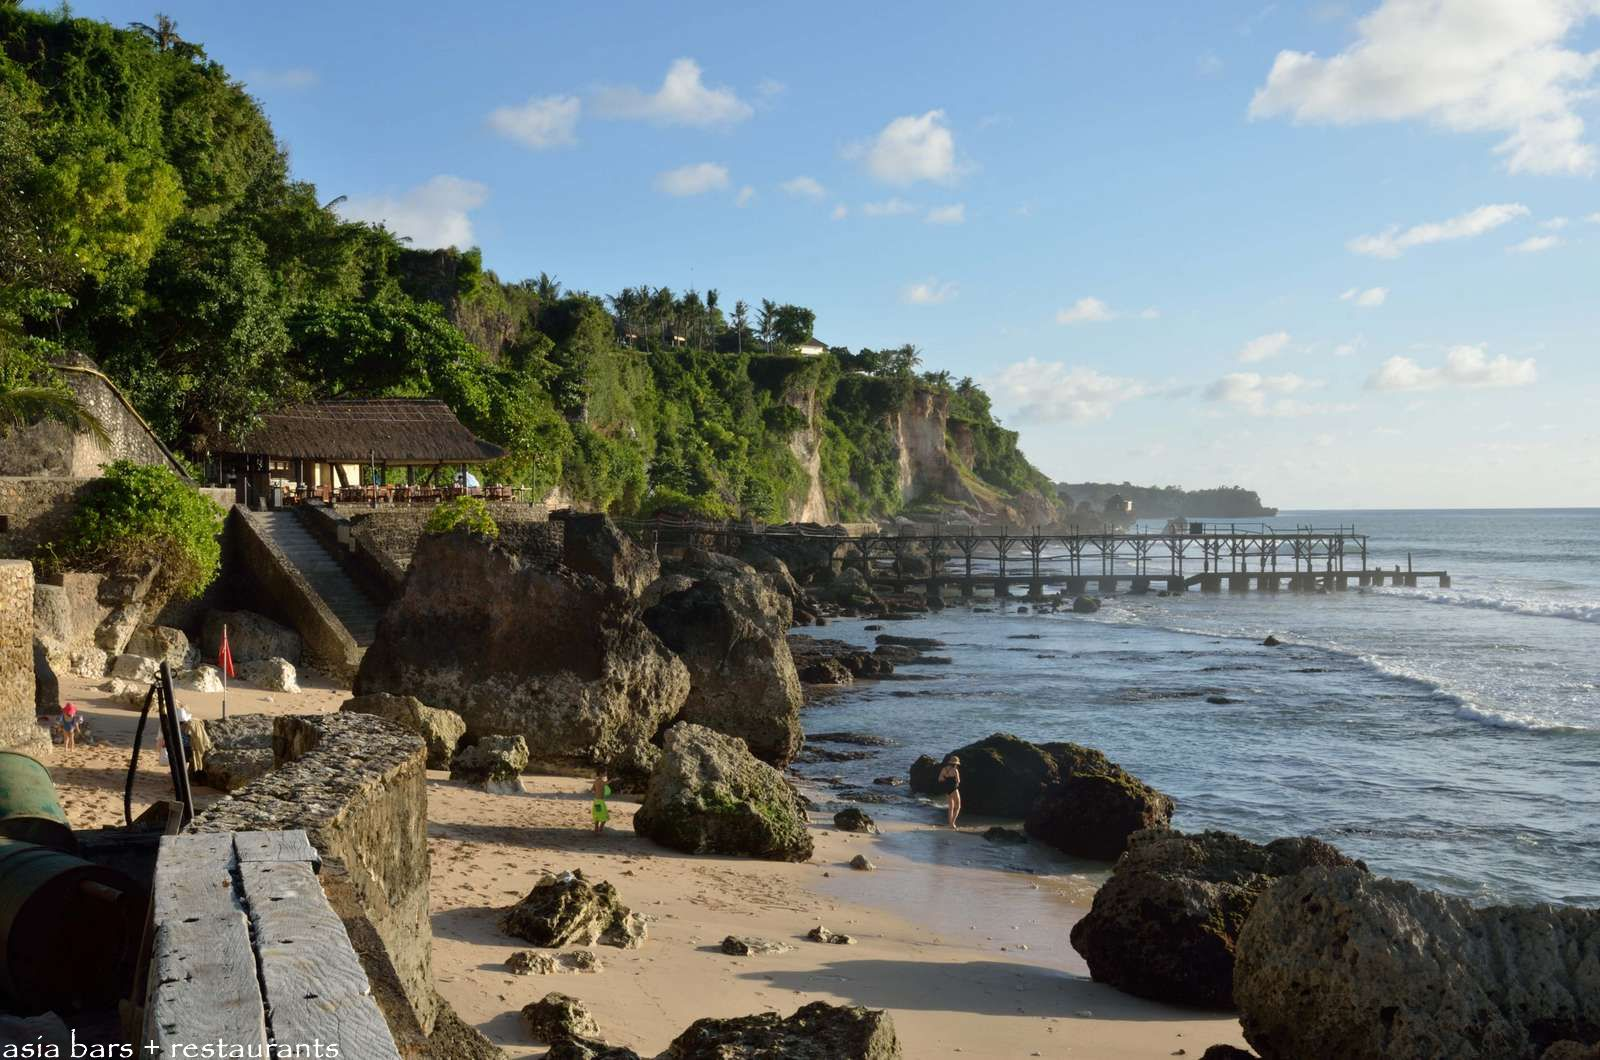 Ayana resort amp spa occupies an expansive site with is own coastline